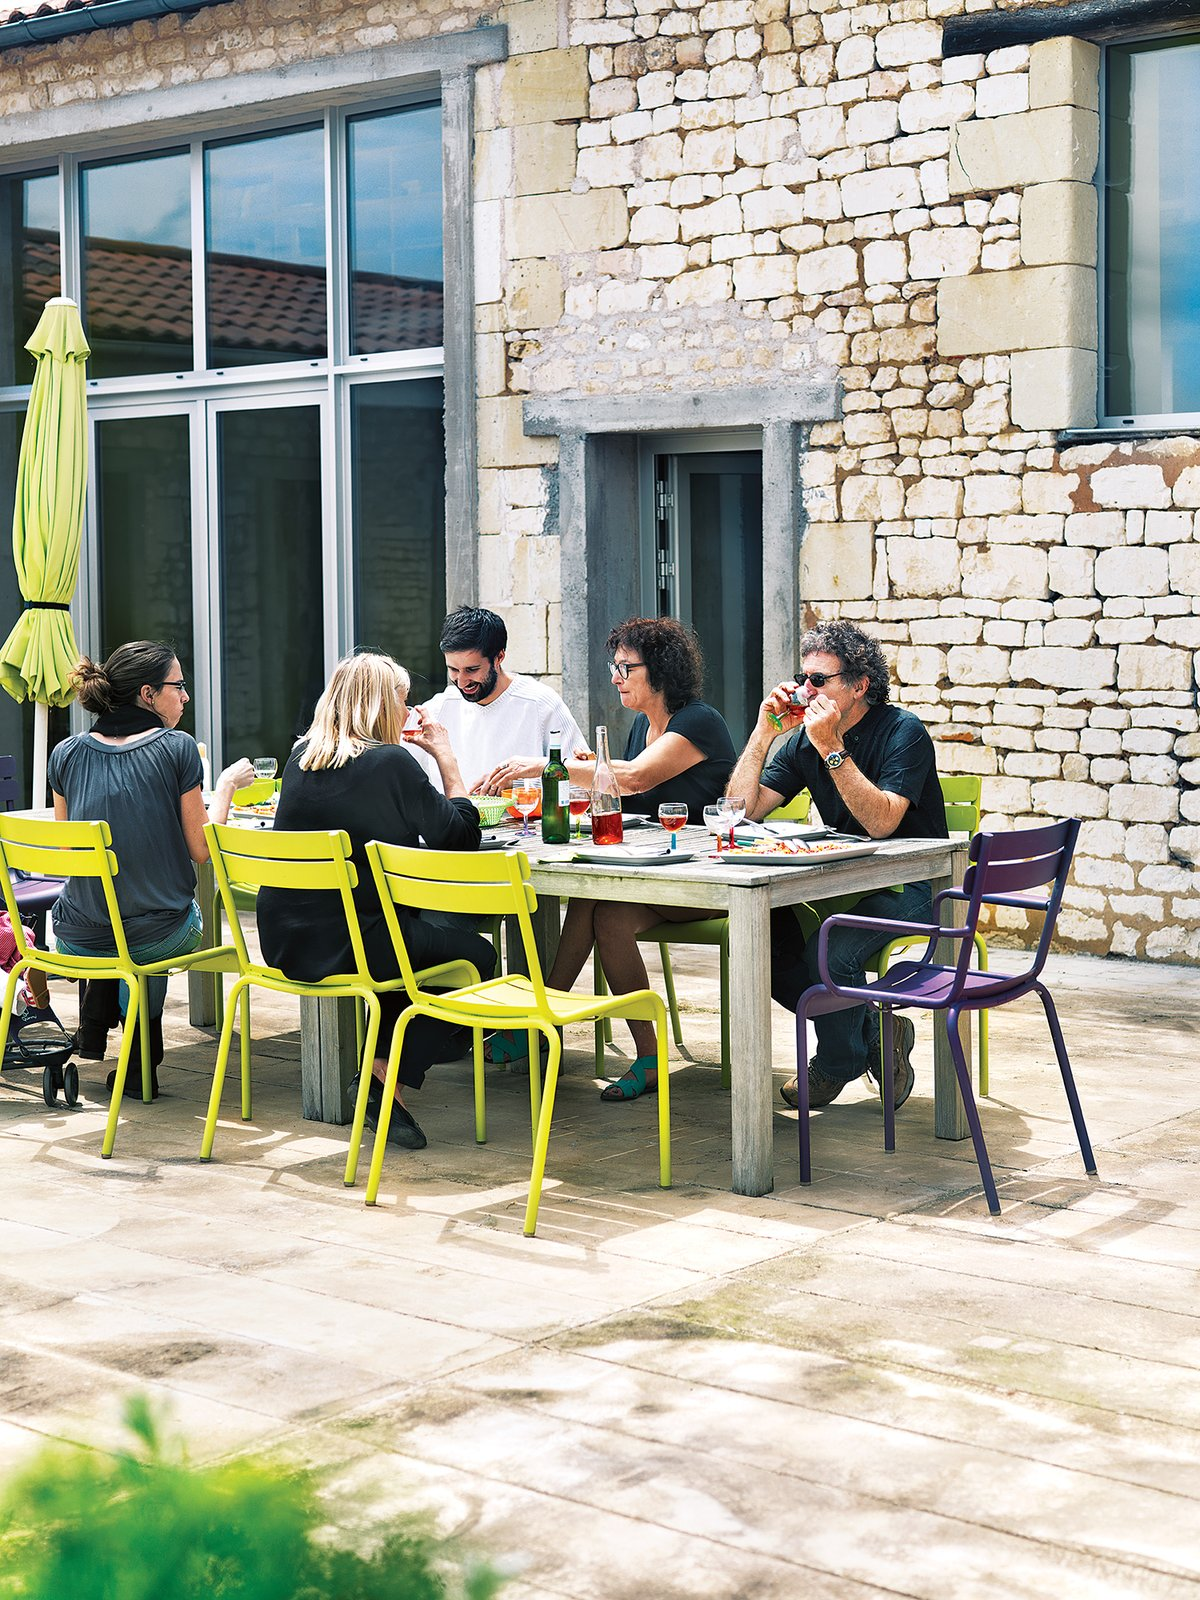 Outdoor Monory's friends, the Leclercs, join her for an alfresco meal on the patio. They're seated at a custom-made table on Fermob's Luxembourg chairs.  Outdoor from Matali Crasset Renovates Monory Farmhouse